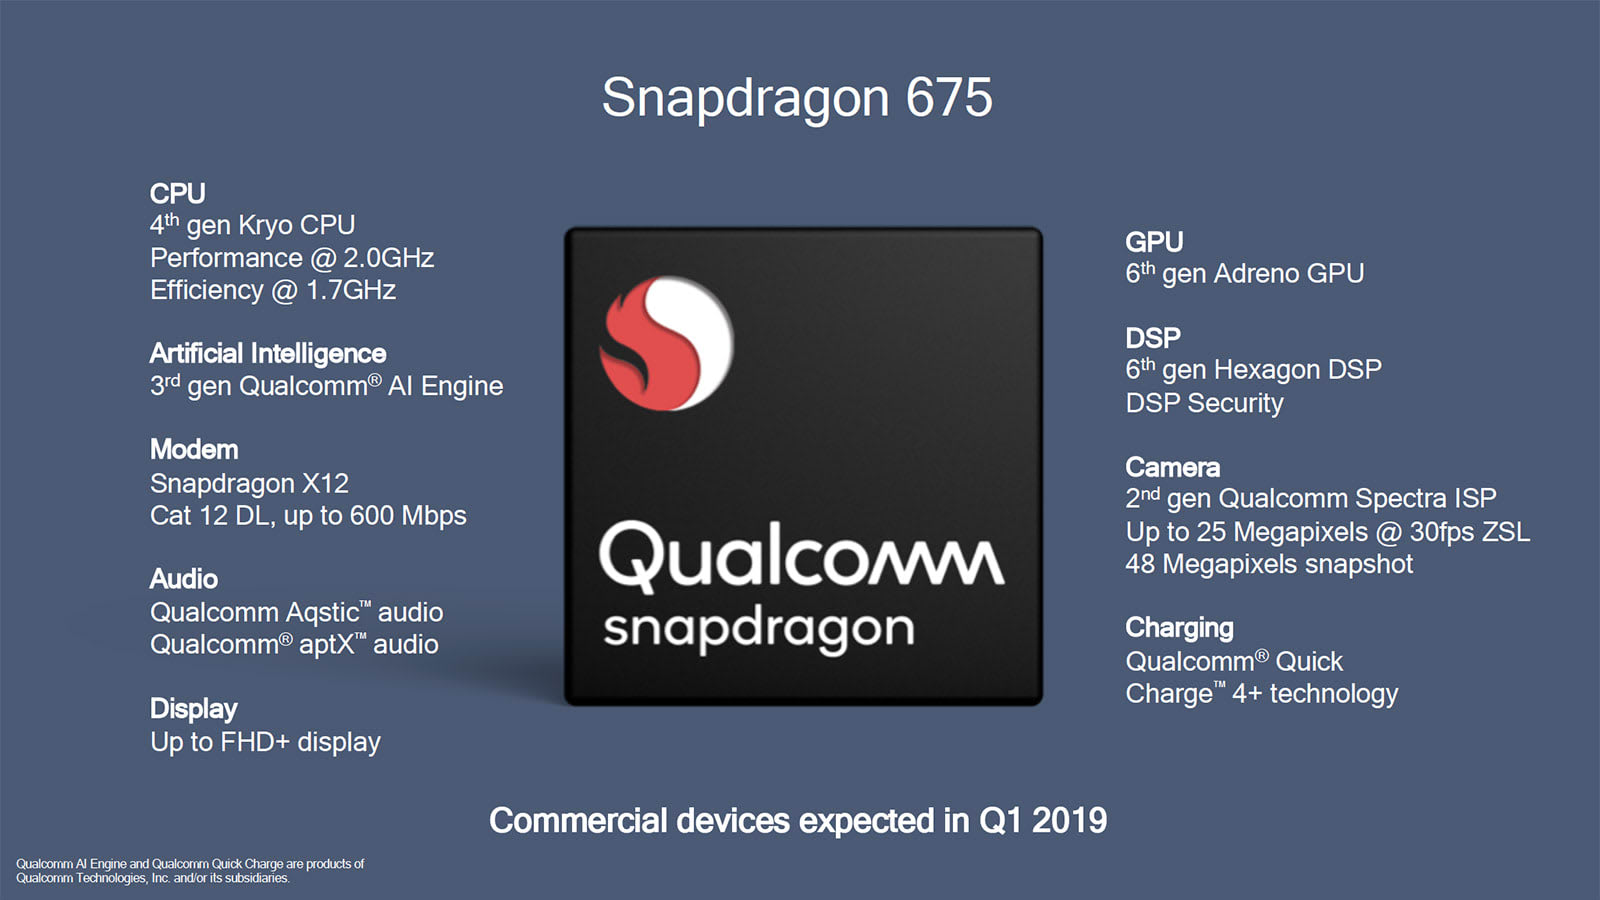 Qualcomm's Snapdragon 675 rides the multi-camera and gaming